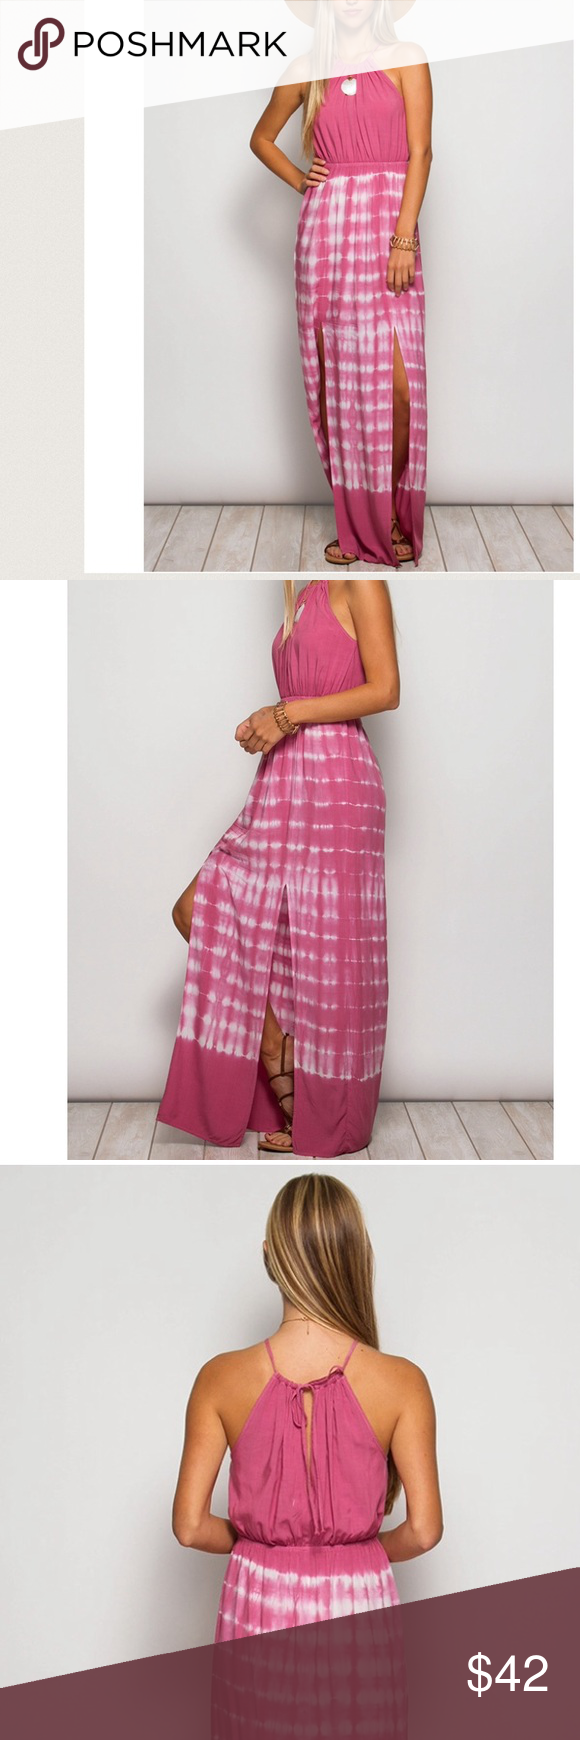 Shoes for pink dress  Buy  Freeuc Rose Tie Dyed Halter Maxi  Dress models Halter